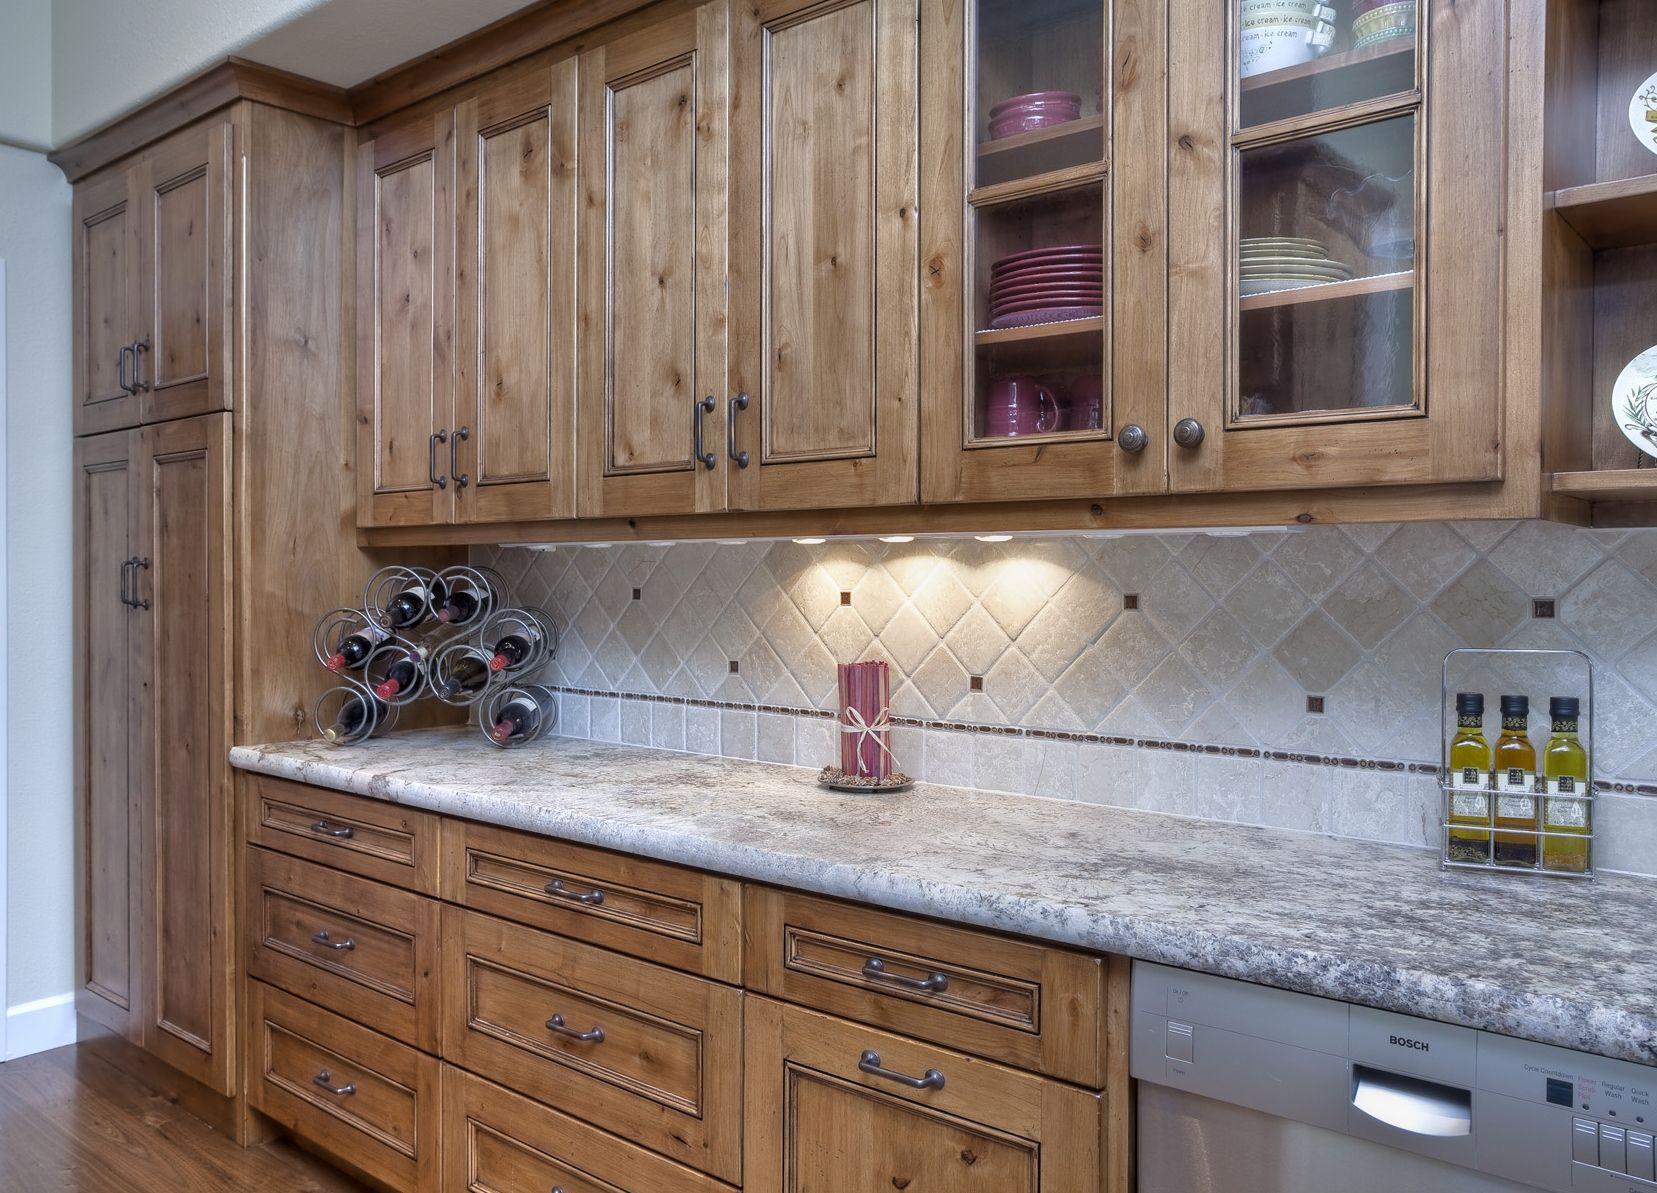 Rustic Knotty Alder Kitchen With Stain And Glaze Finish By